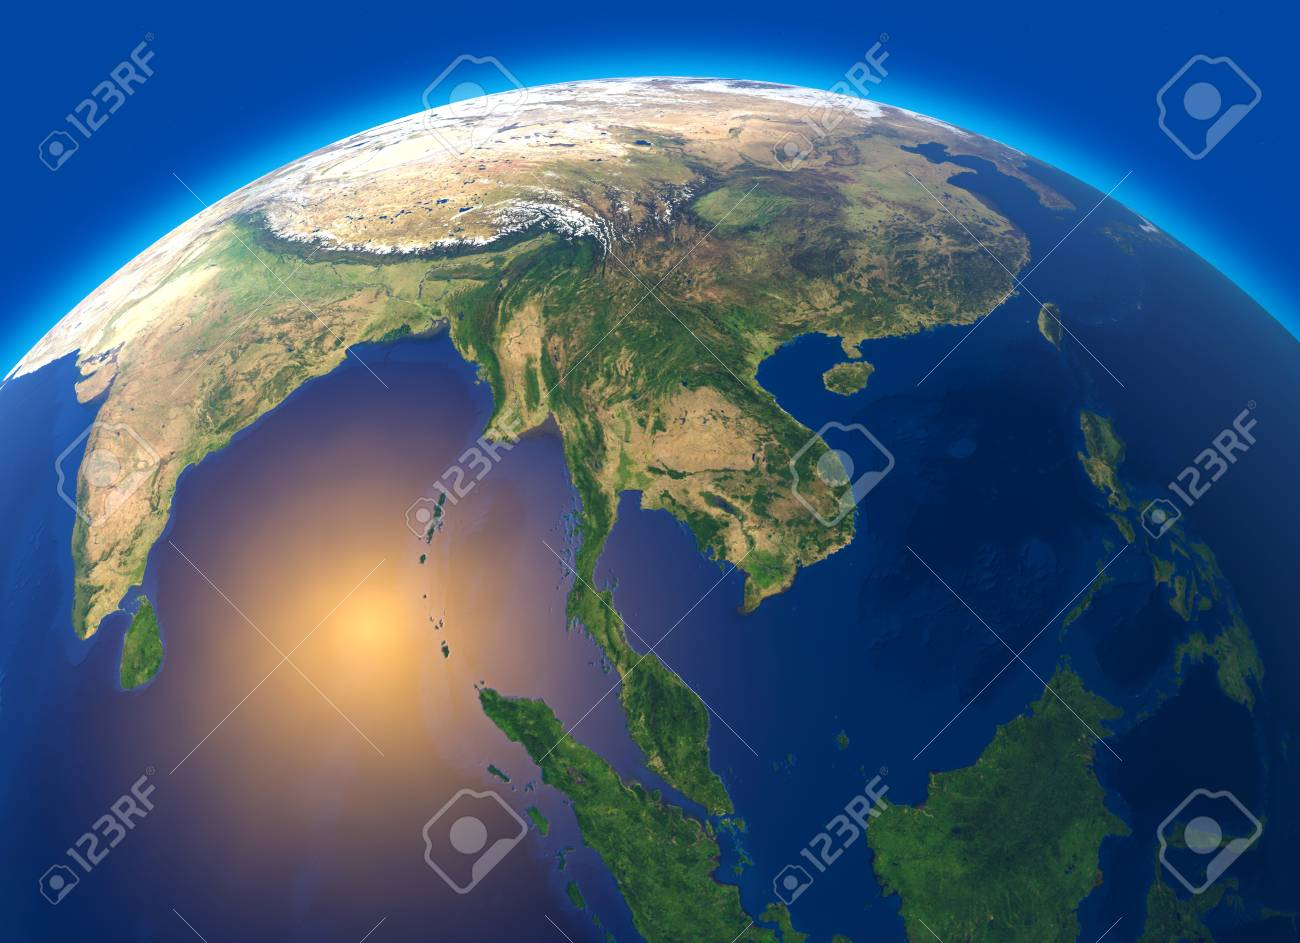 Map Of The World Satellite.Physical Map Of The World Satellite View Of Southeast Asia Stock